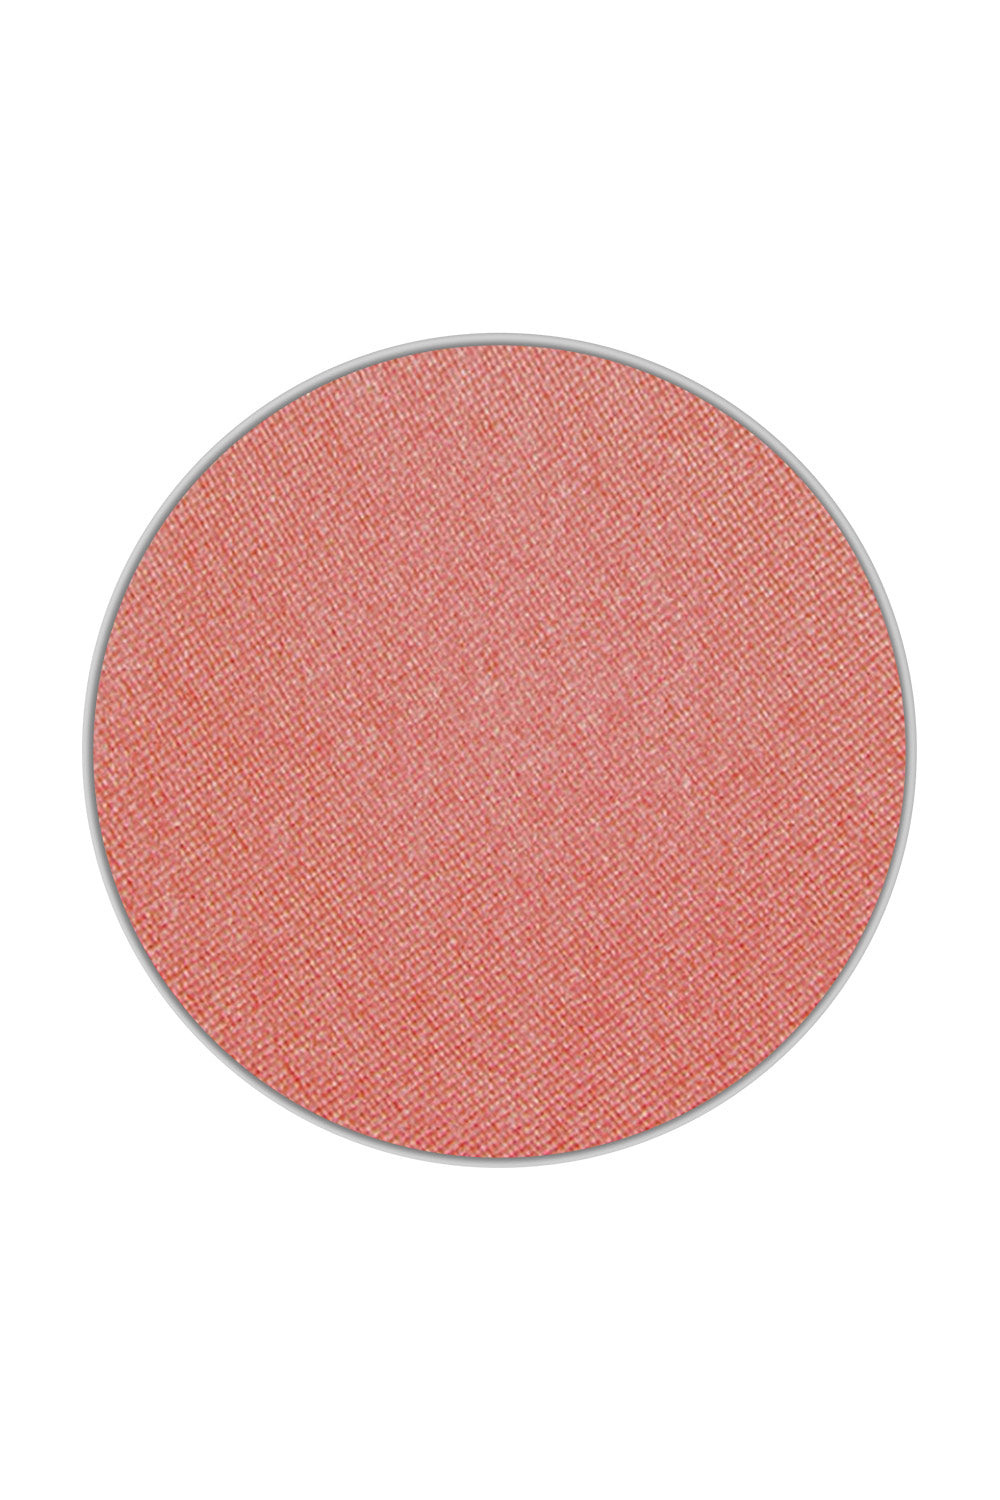 Type 3 Blush Pan - Cameo